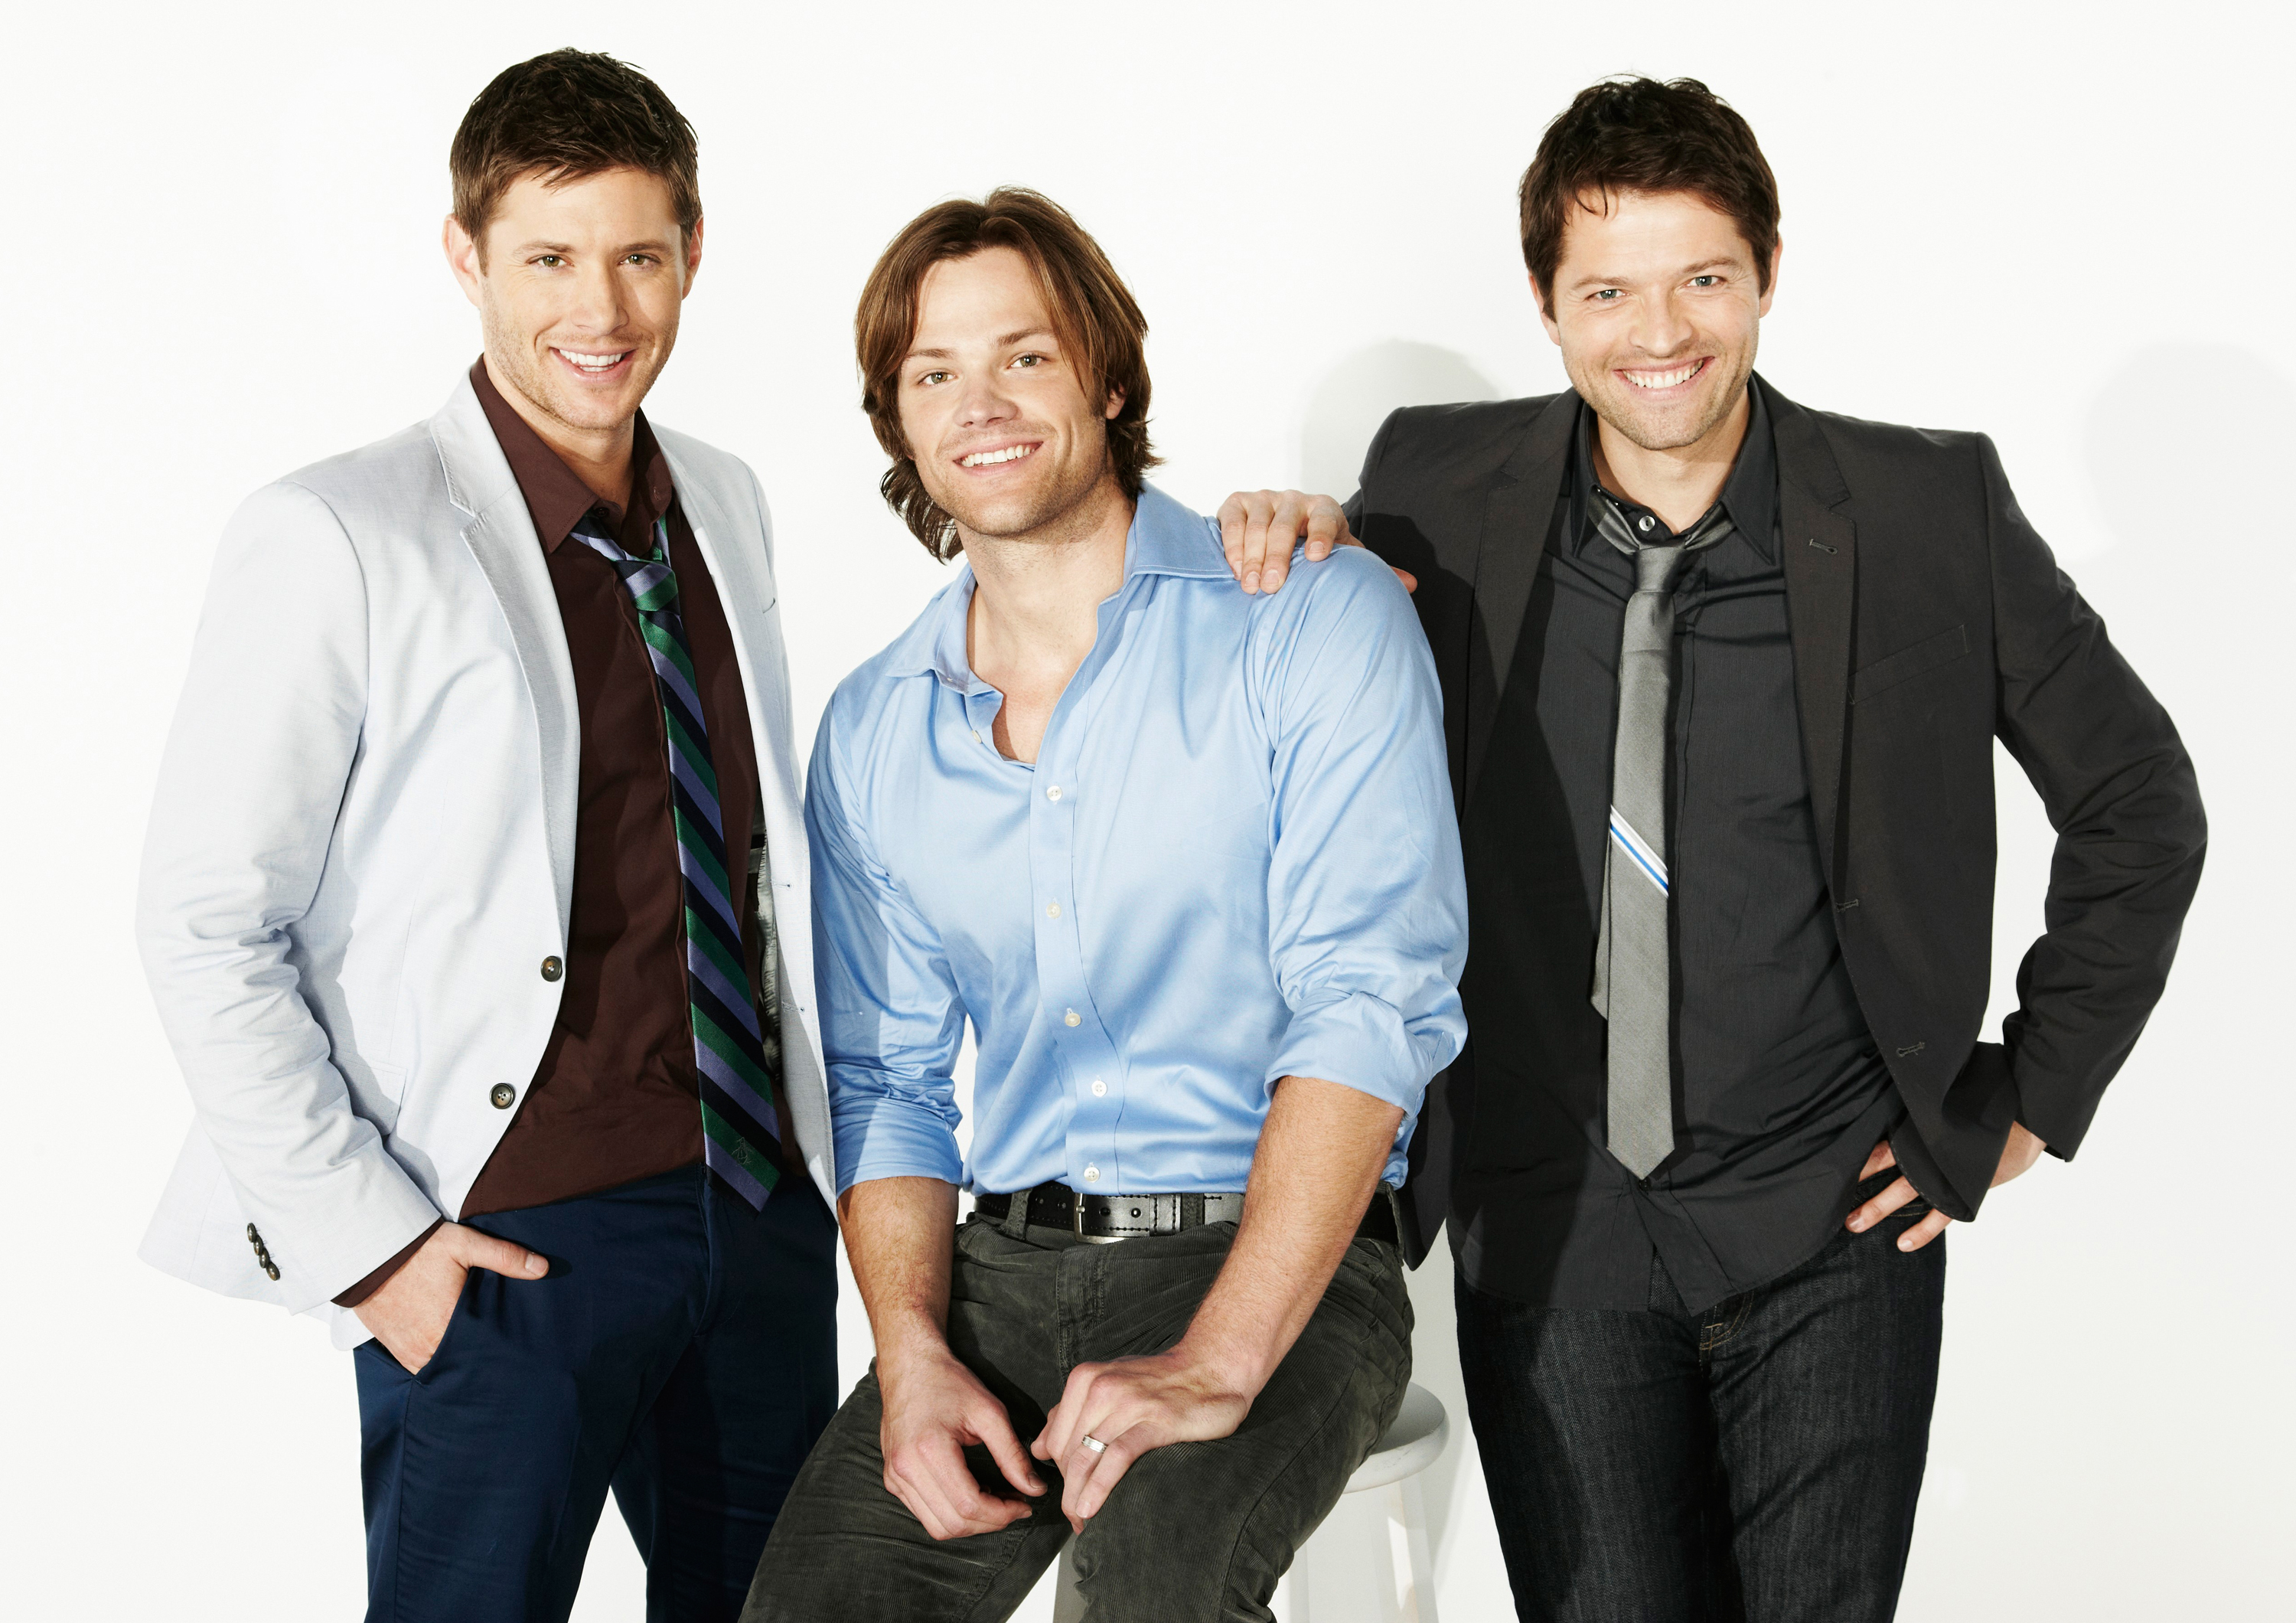 Jared Padalecki Misha Collins Images TV GUIDE HD Wallpaper And Background Photos